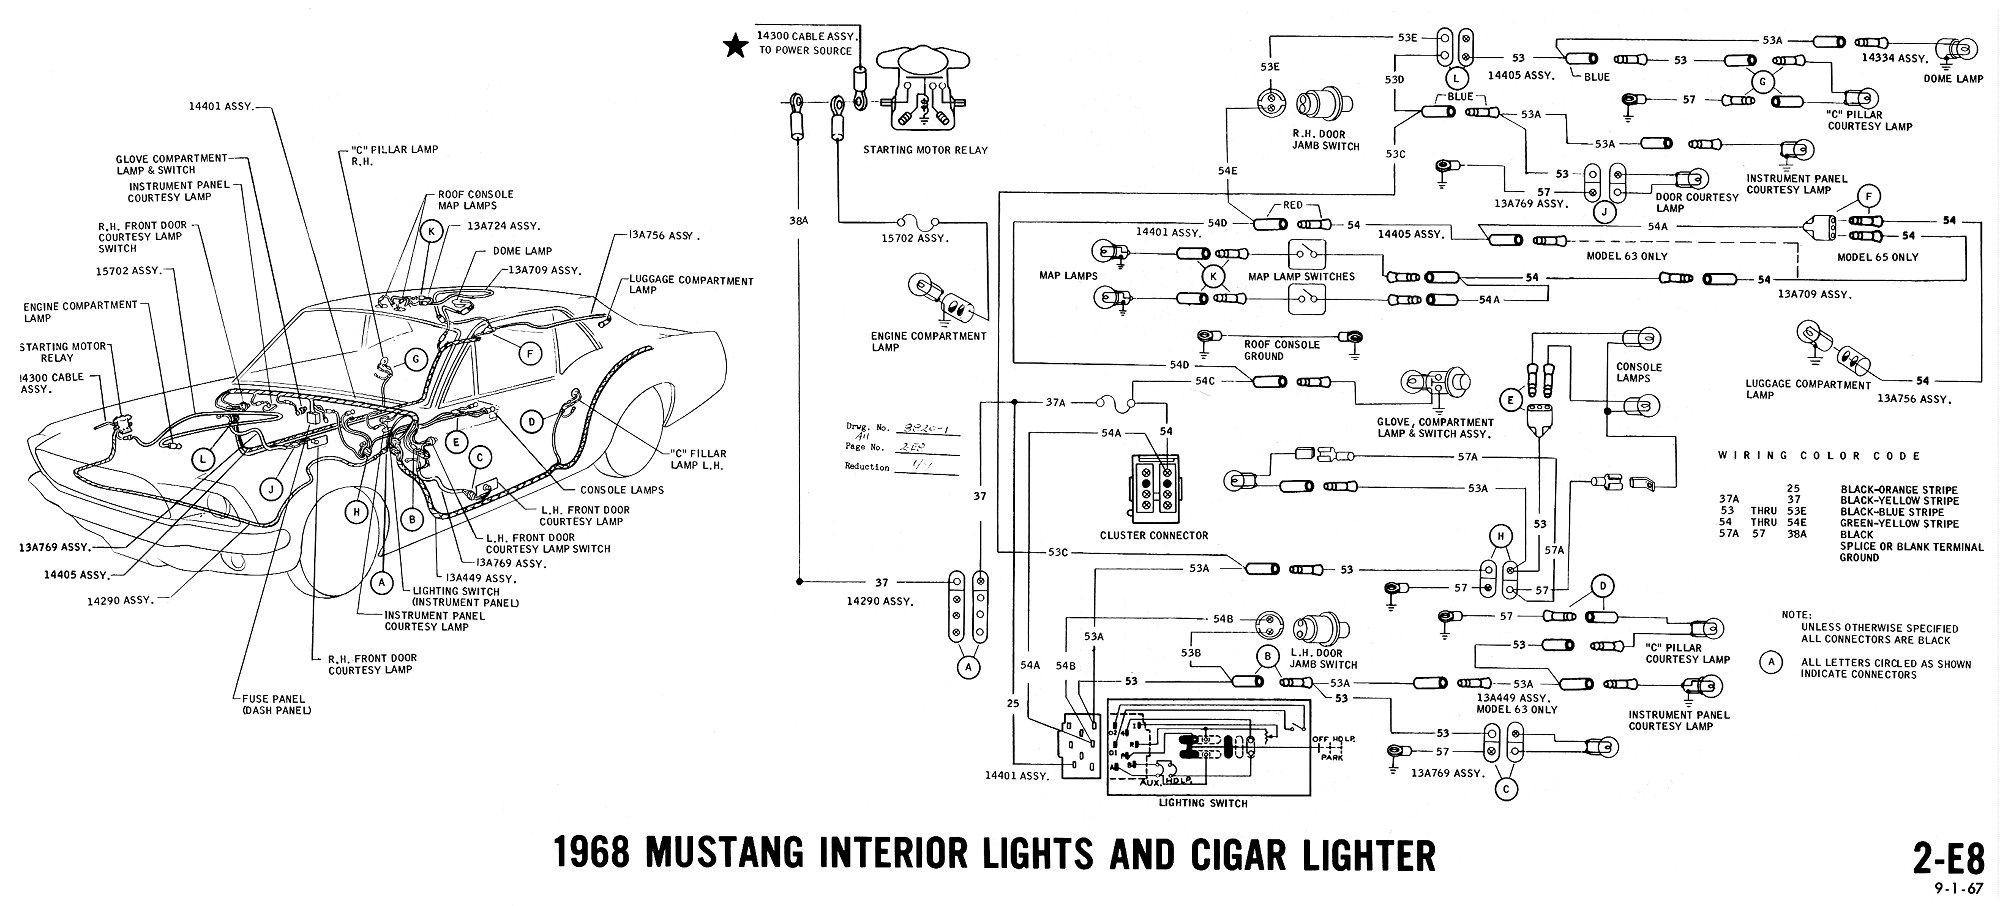 1968 Ford Mustang Wiring Diagram Electrical Schematics 1967 Diagrams Evolving Software Automatic Transmission